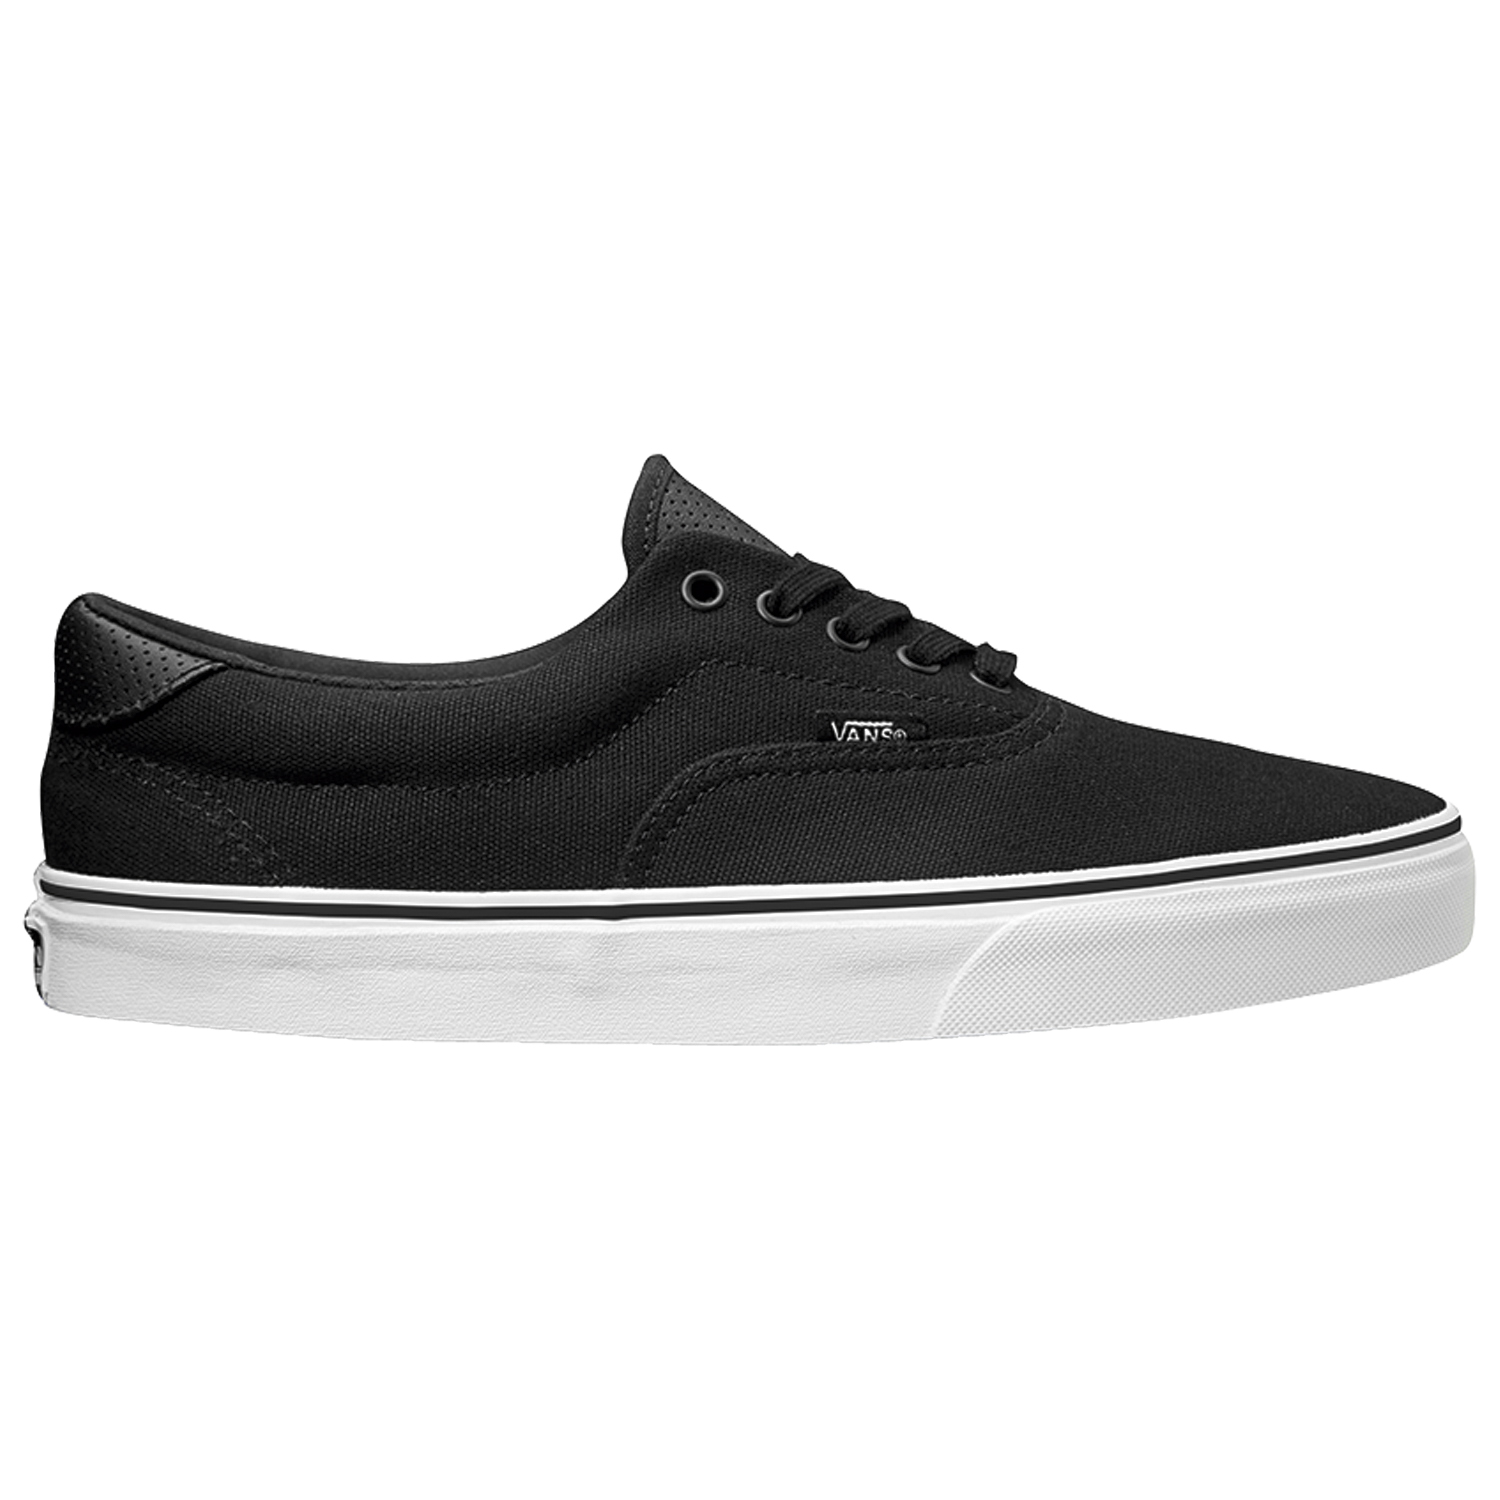 vans-era-59-cp-black-true-white-119-90